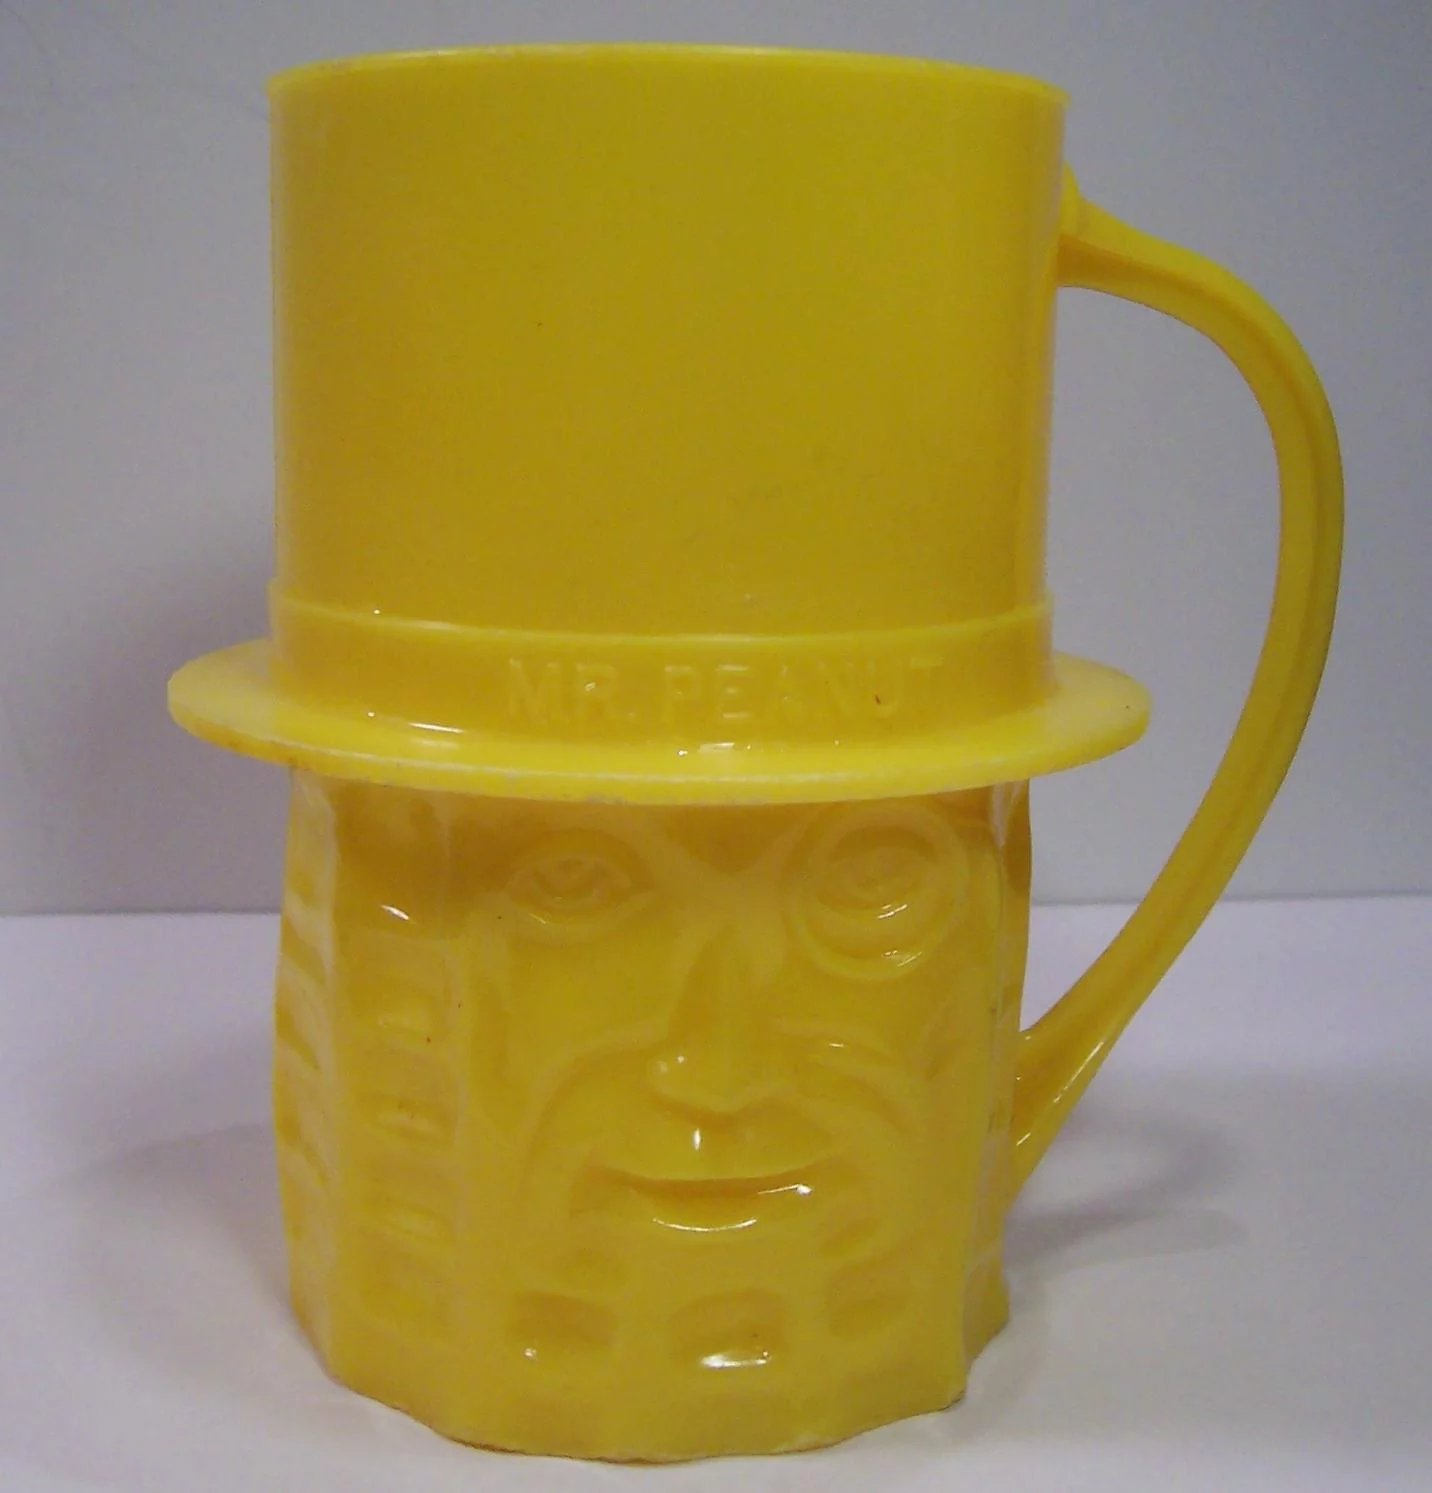 Planters Nuts Vintage Yellow Mr Peanut Mug Ruth S